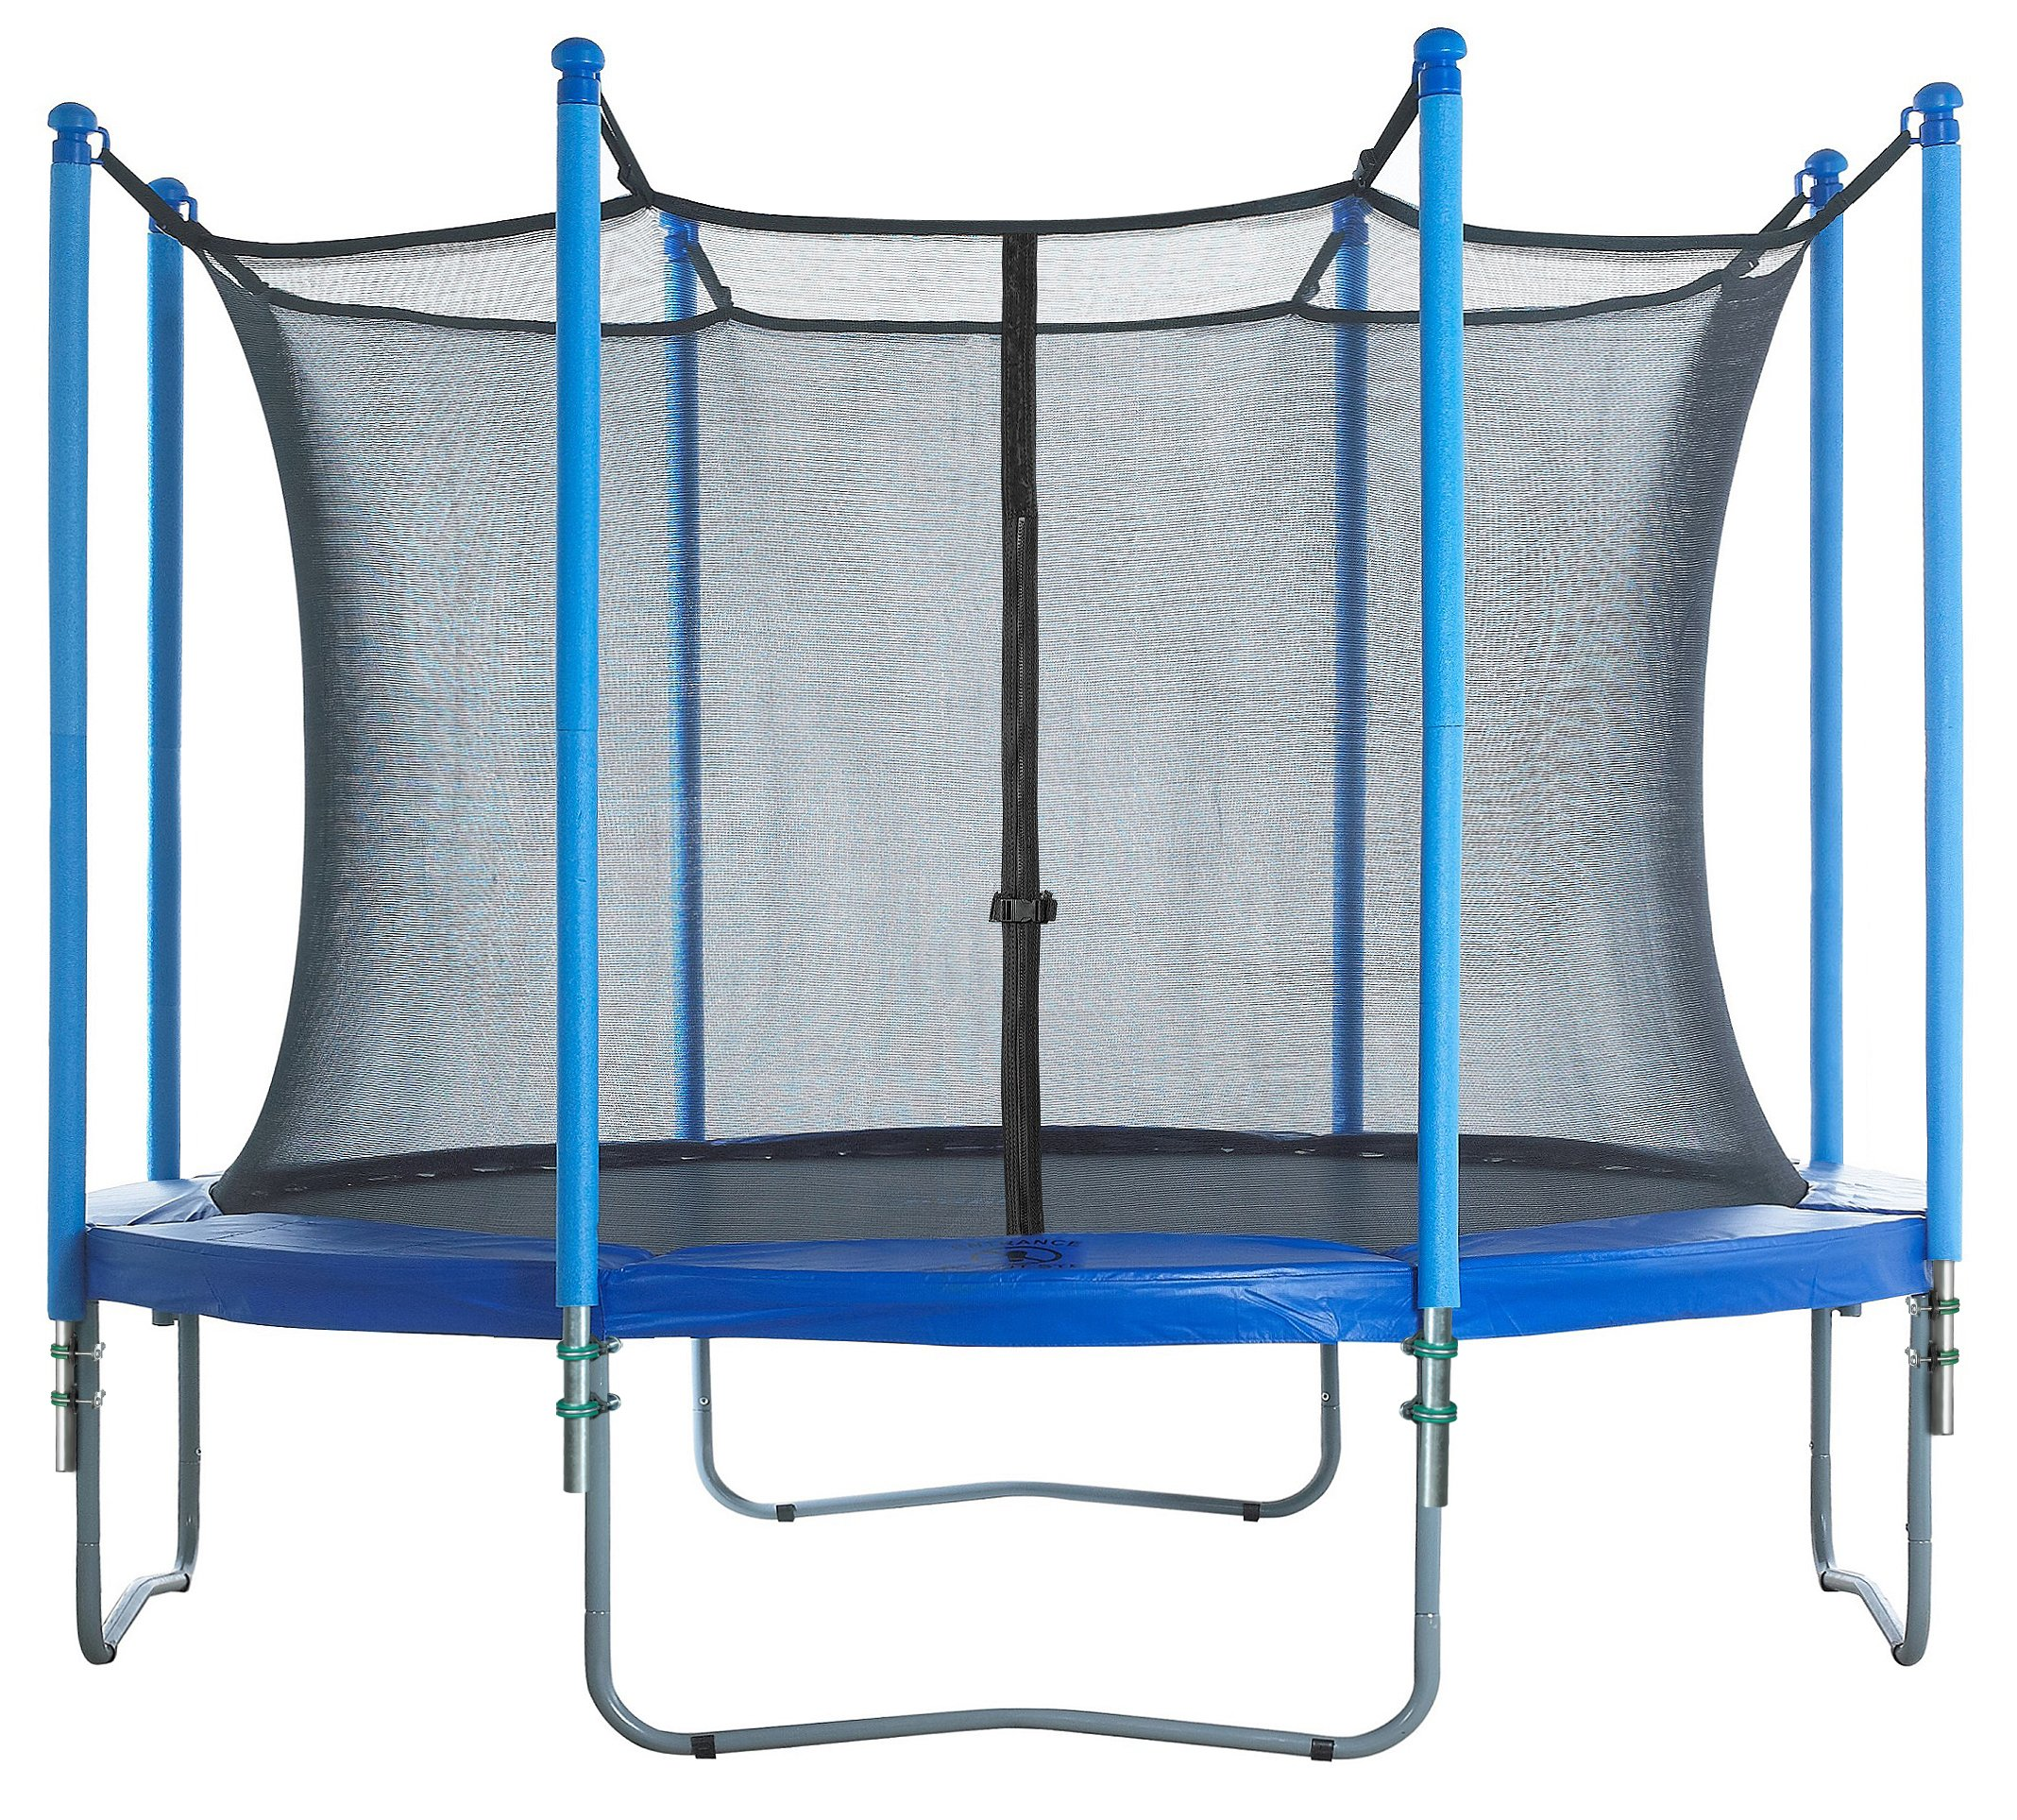 Trampoline Enclosure Set, to fit 14 FT. Round Frames, for 4 or 8 W-Shaped Legs -Set Includes: Net, Poles & Hardware Only by Upper Bounce (Image #6)